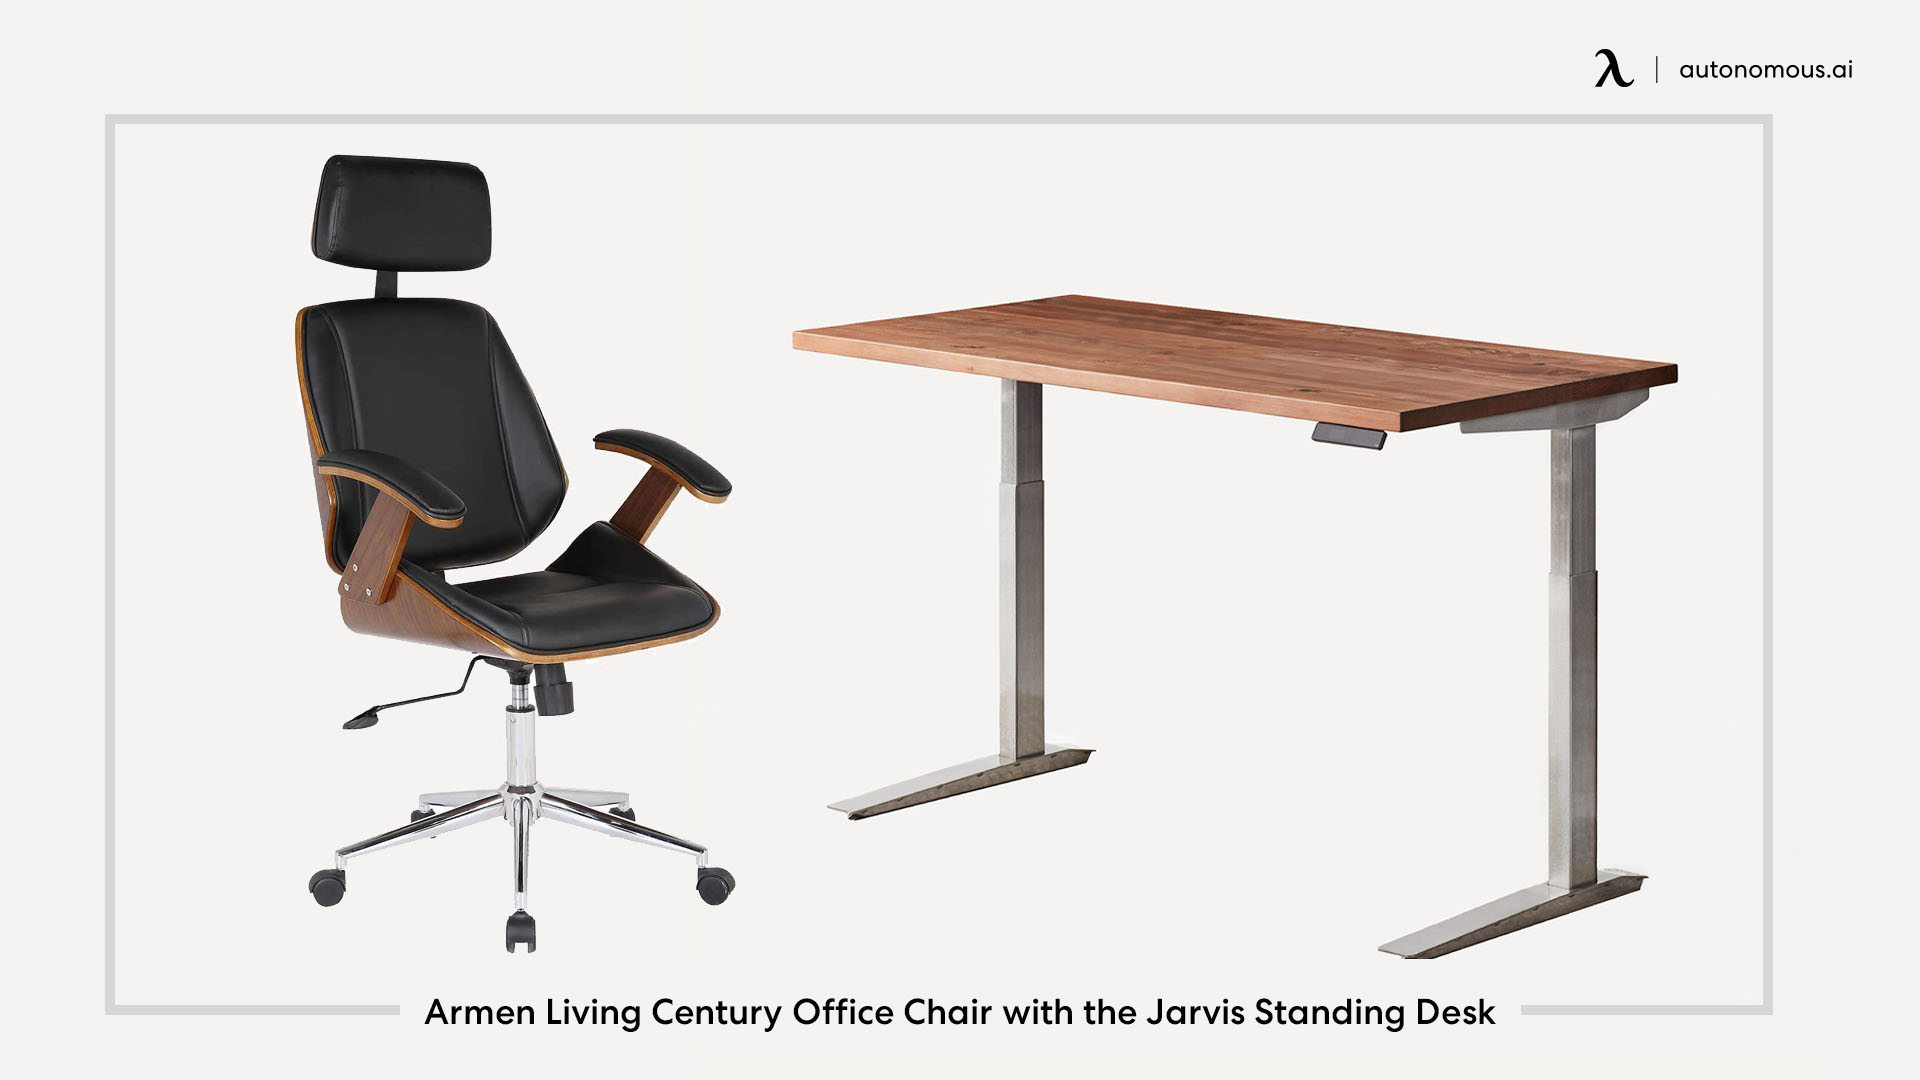 Armen Living Century Office Chair with the Jarvis Standing Desk